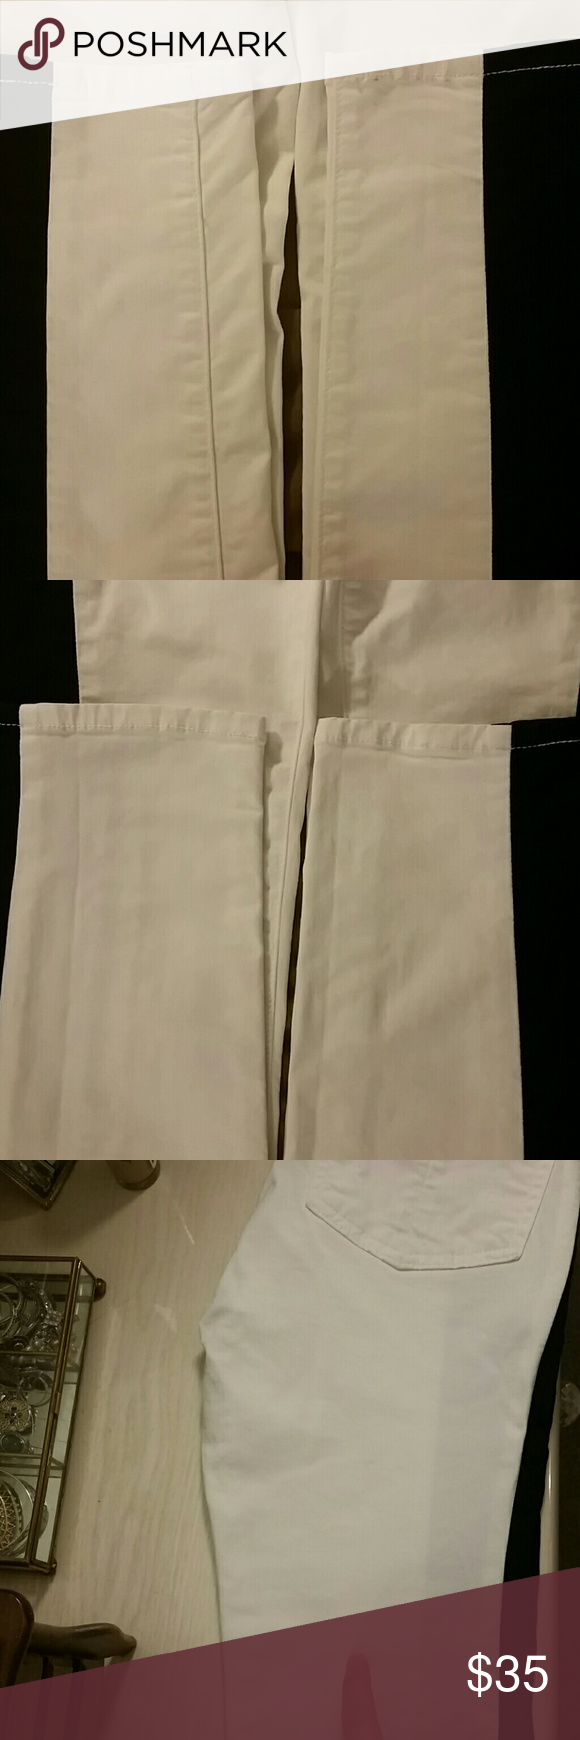 Rag & Bone Skinny Pant *Extra Pics* Extra pics of ankles front and back in picture 1&2. Slim to none ware.  I looked them over, very closely, and found a tiny faint spot (on the right back thigh) that I am pointing out in picture 3. So faint it was hard to capture in the picture.  -Other listing of the pant for sale in my closet rag & bone Jeans Skinny